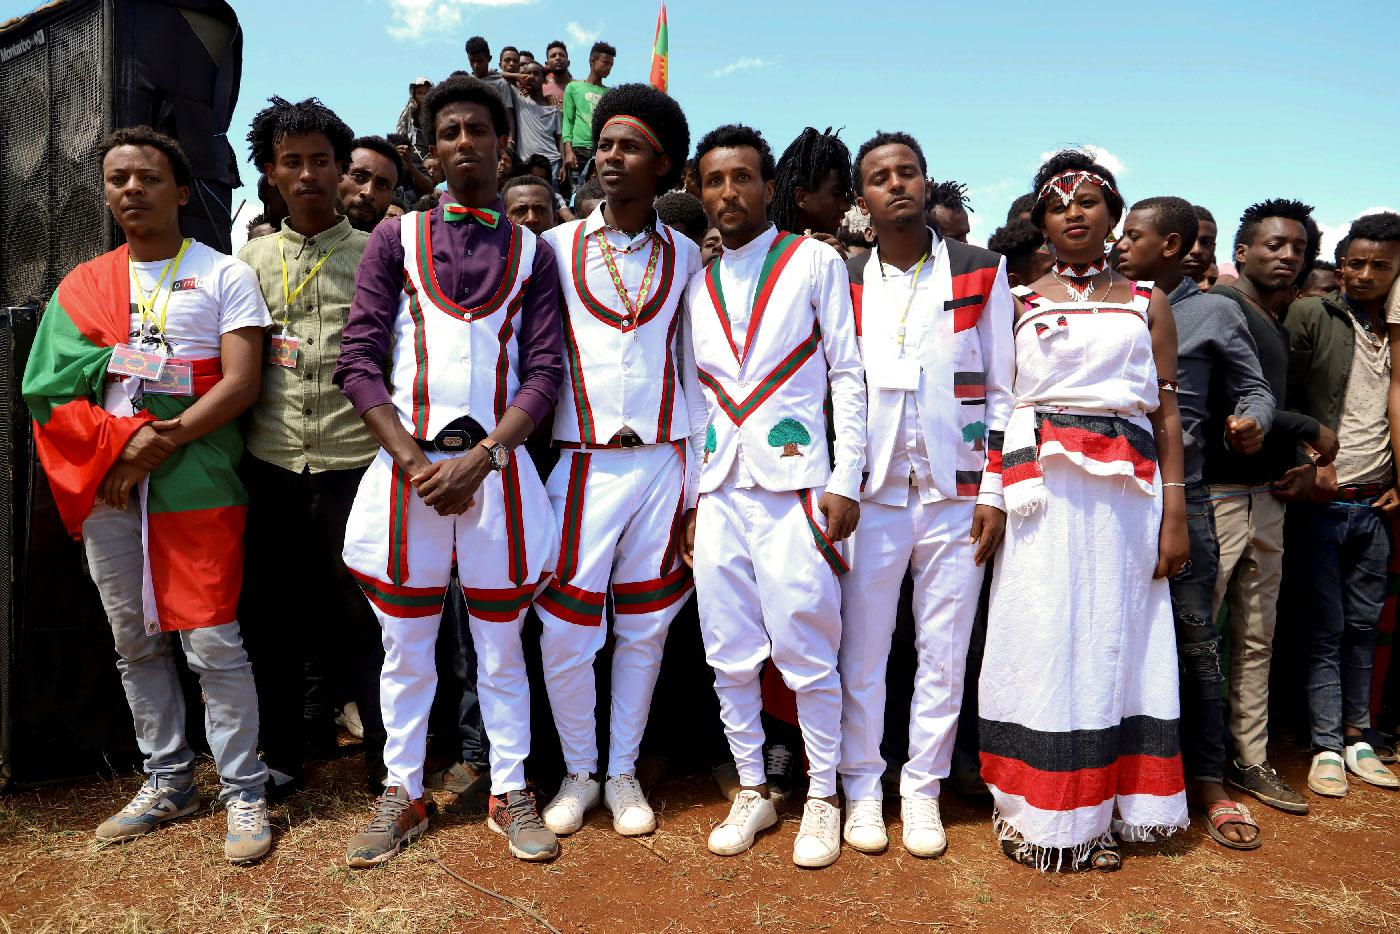 Youths wearing traditional Oromo costumes attend an Oromo Liberation Front (OLF) rally in the town of Woliso, Oromia Region, Ethiopia, October 21, 2018.